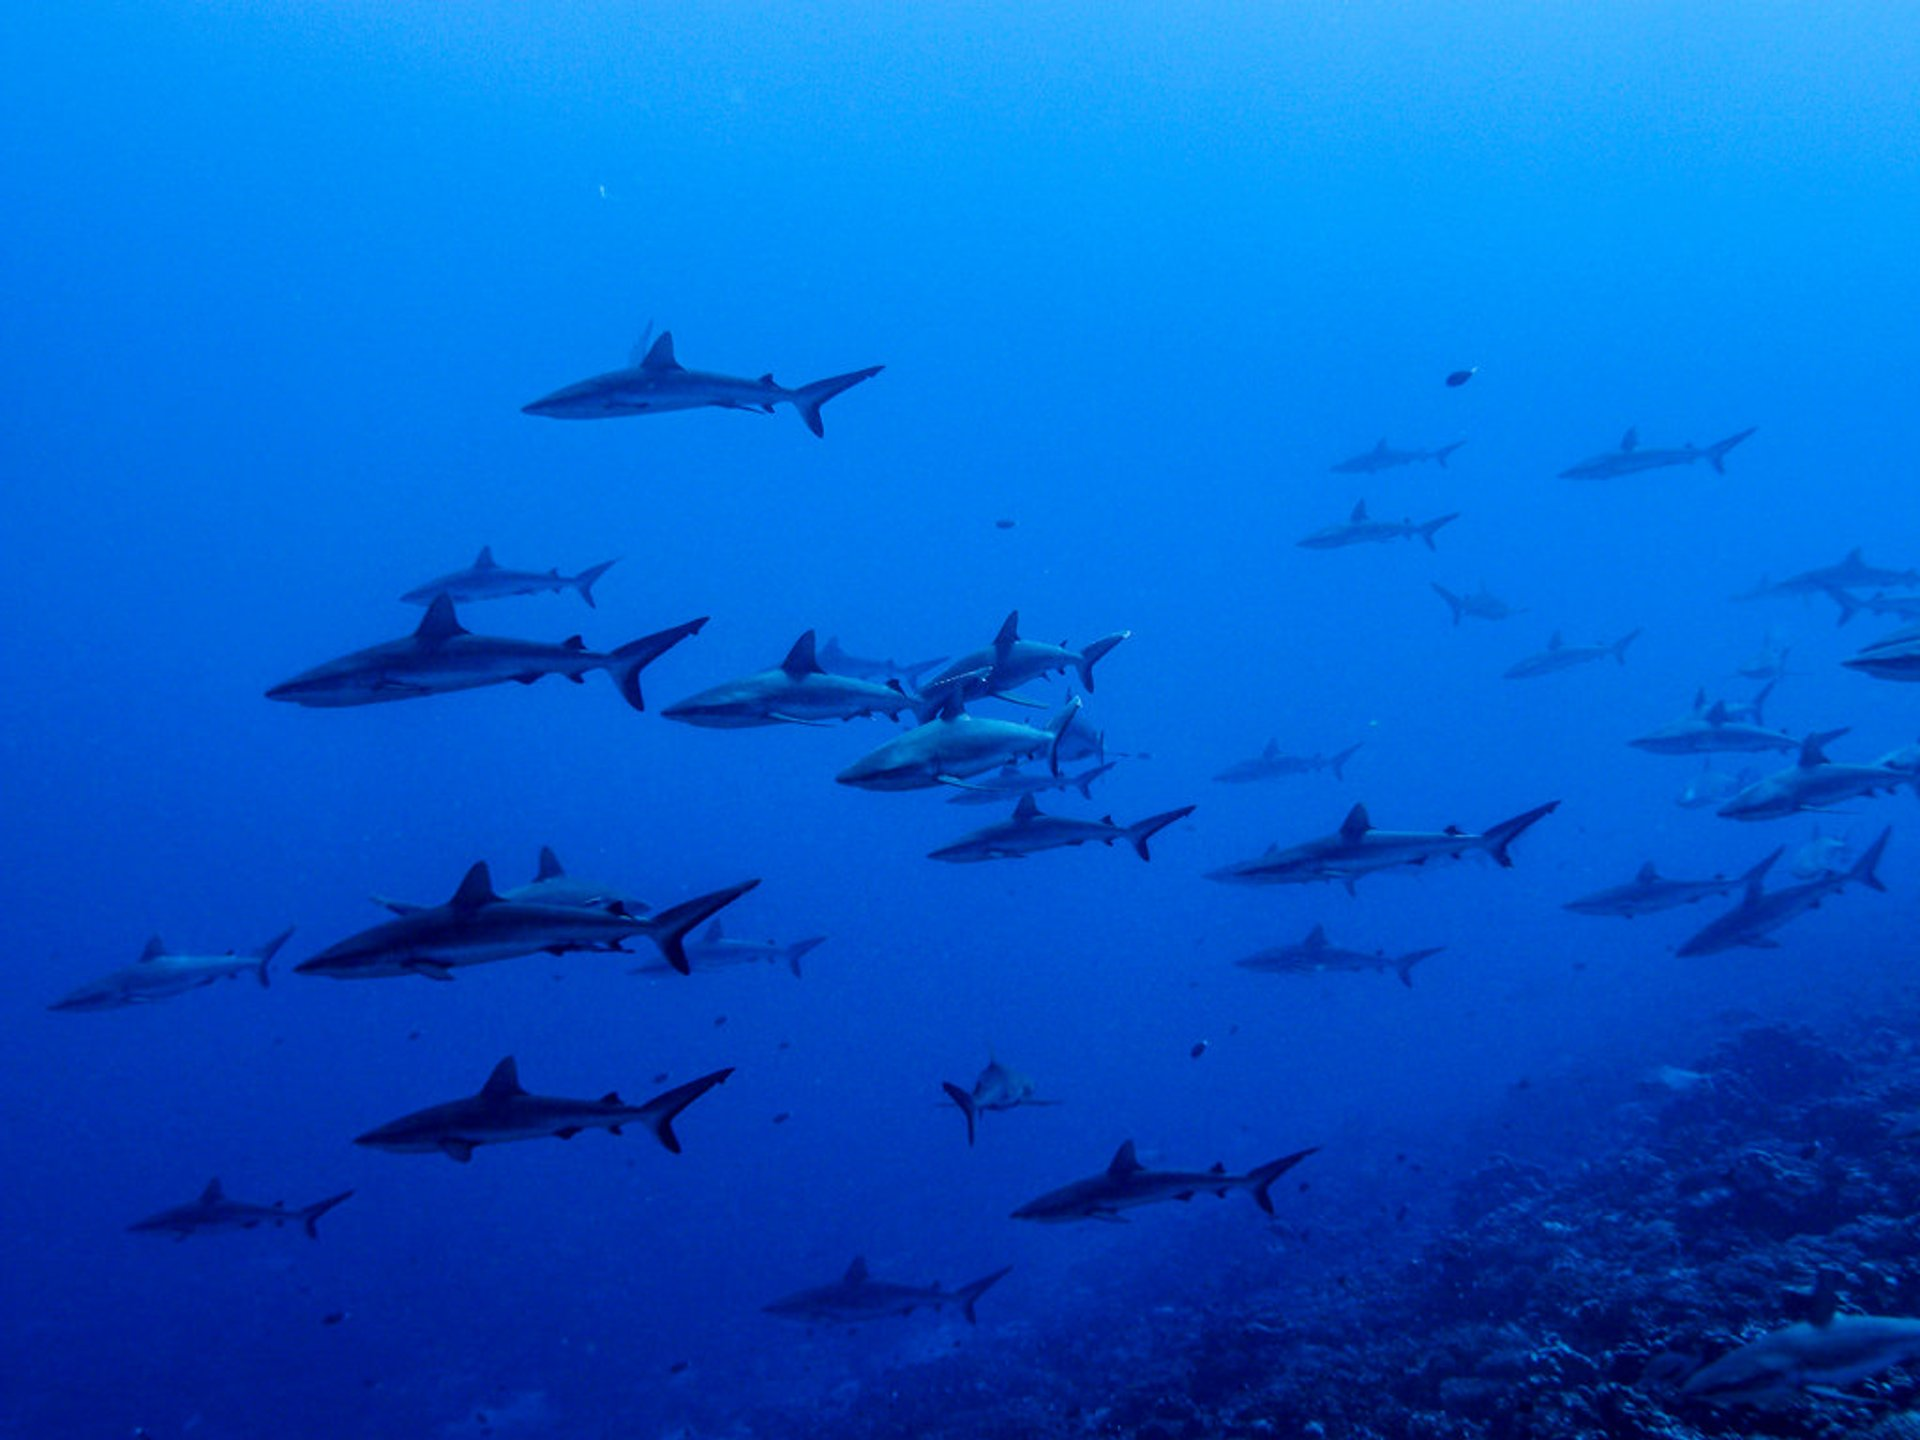 Wall of Sharks in French Polynesia 2019 - Best Time